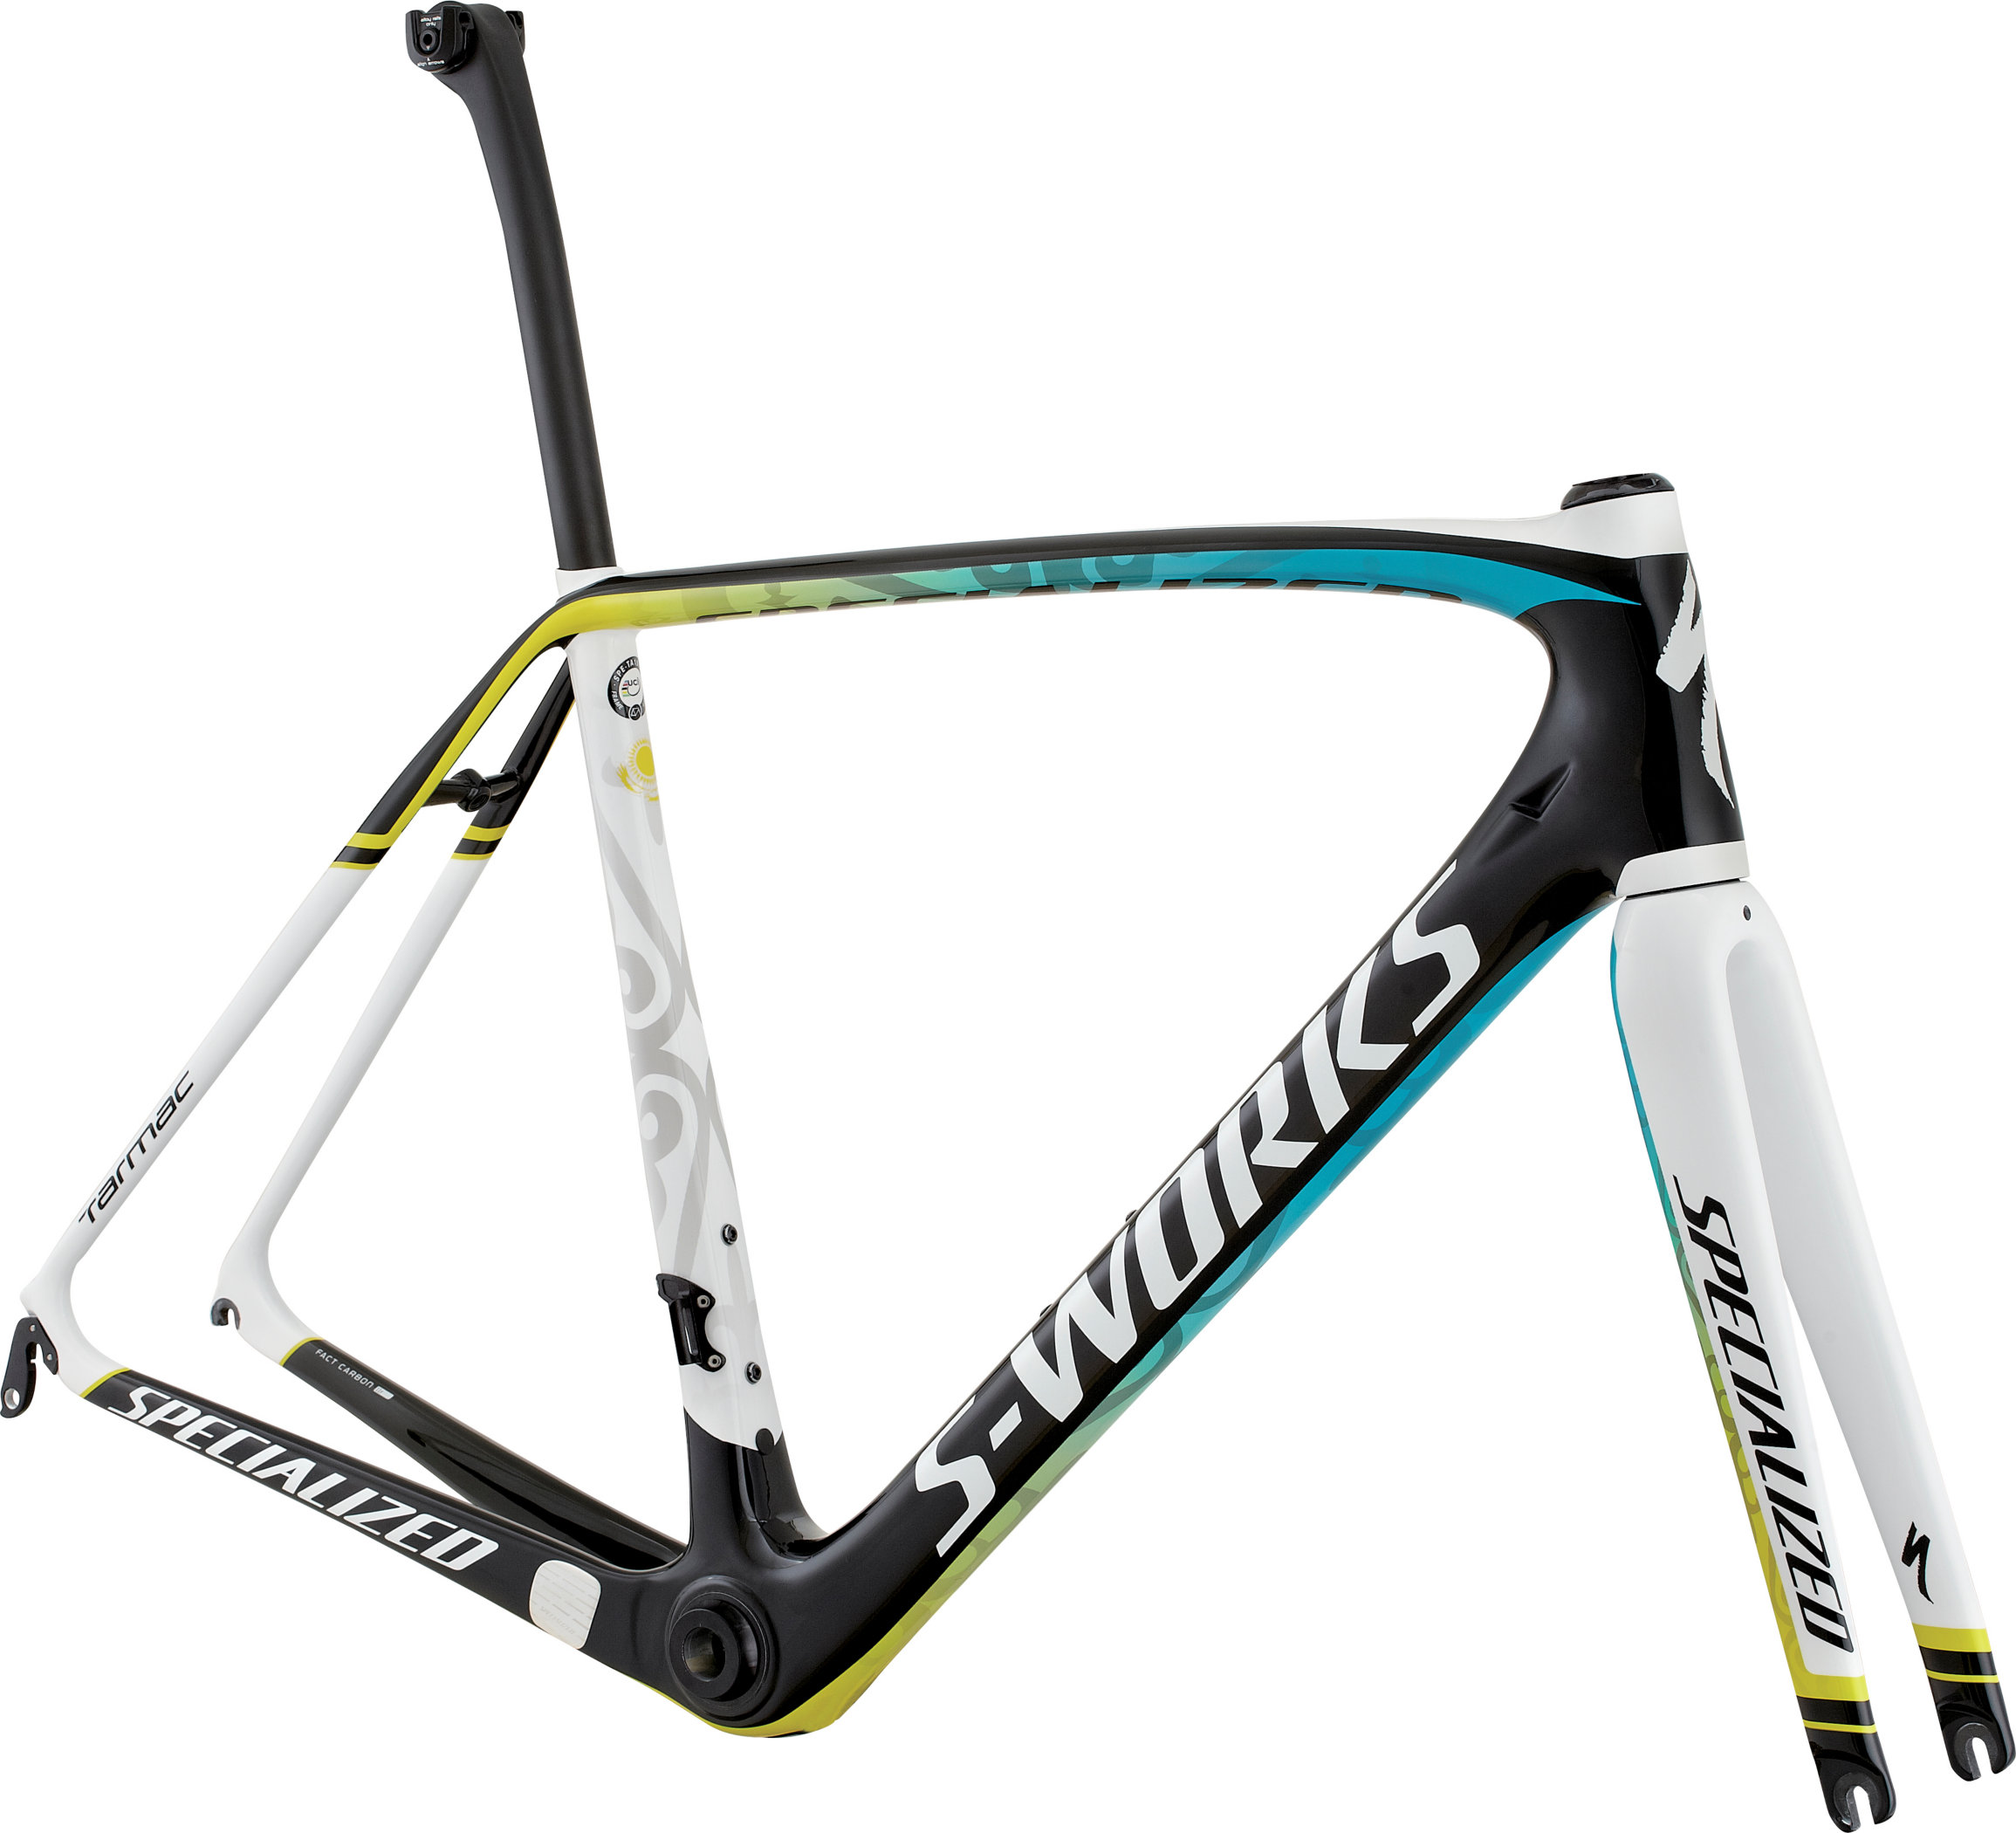 Cuadros Specialized Quadro S Works Tarmac Specialized